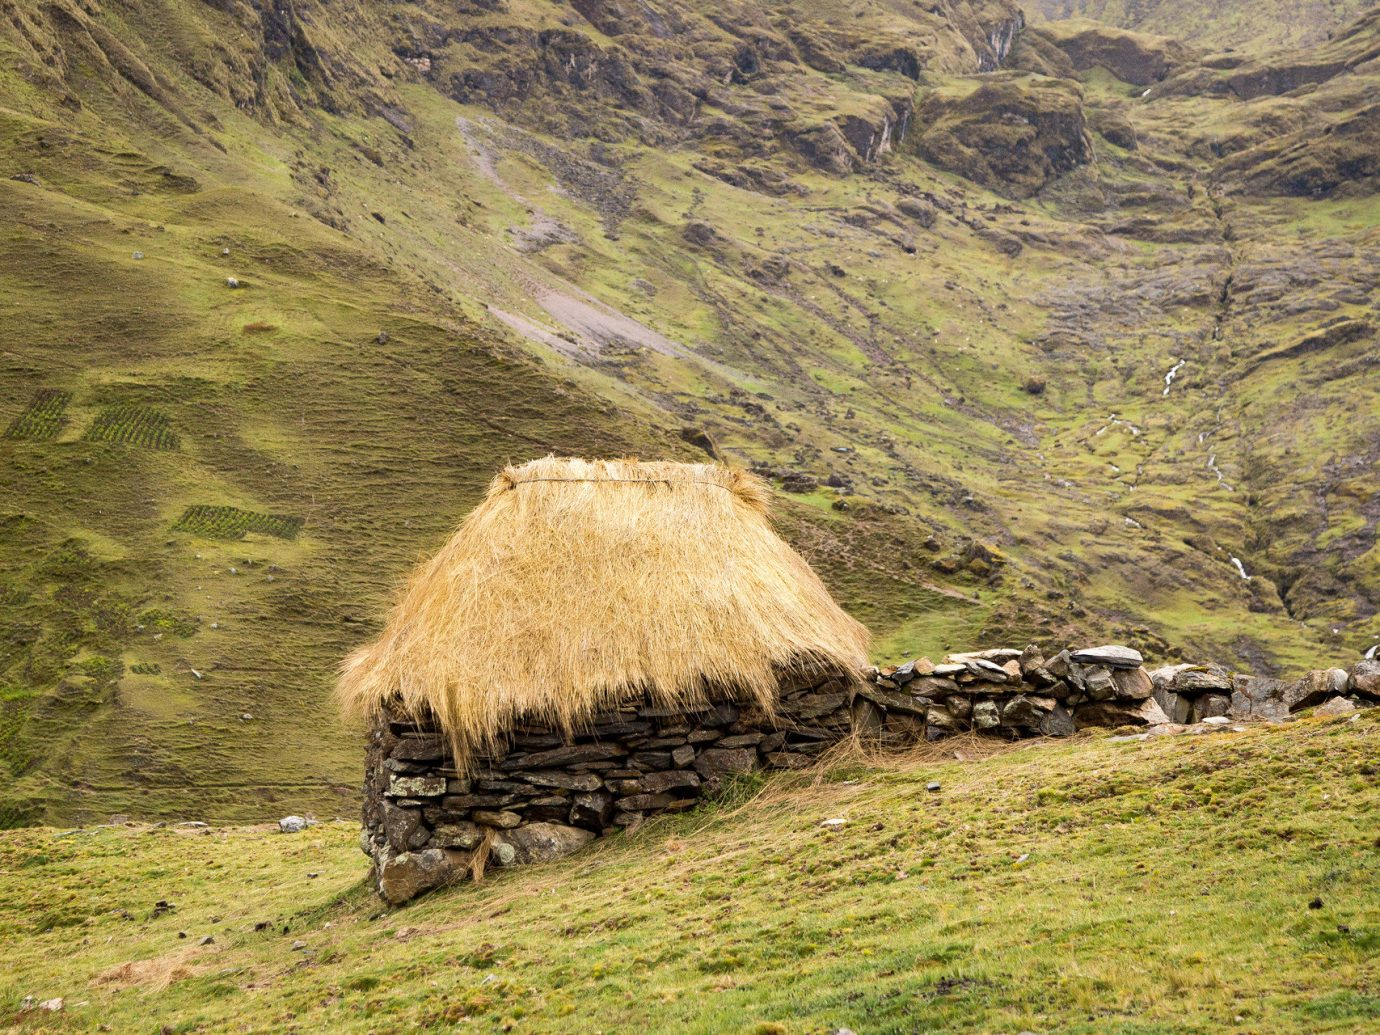 hills hut isolation Mountains Nature Outdoors remote rural serene thatched roof Travel Tips outdoor grass mountain rock agriculture field hill rural area plateau valley hillside hay geology grassy highland lush